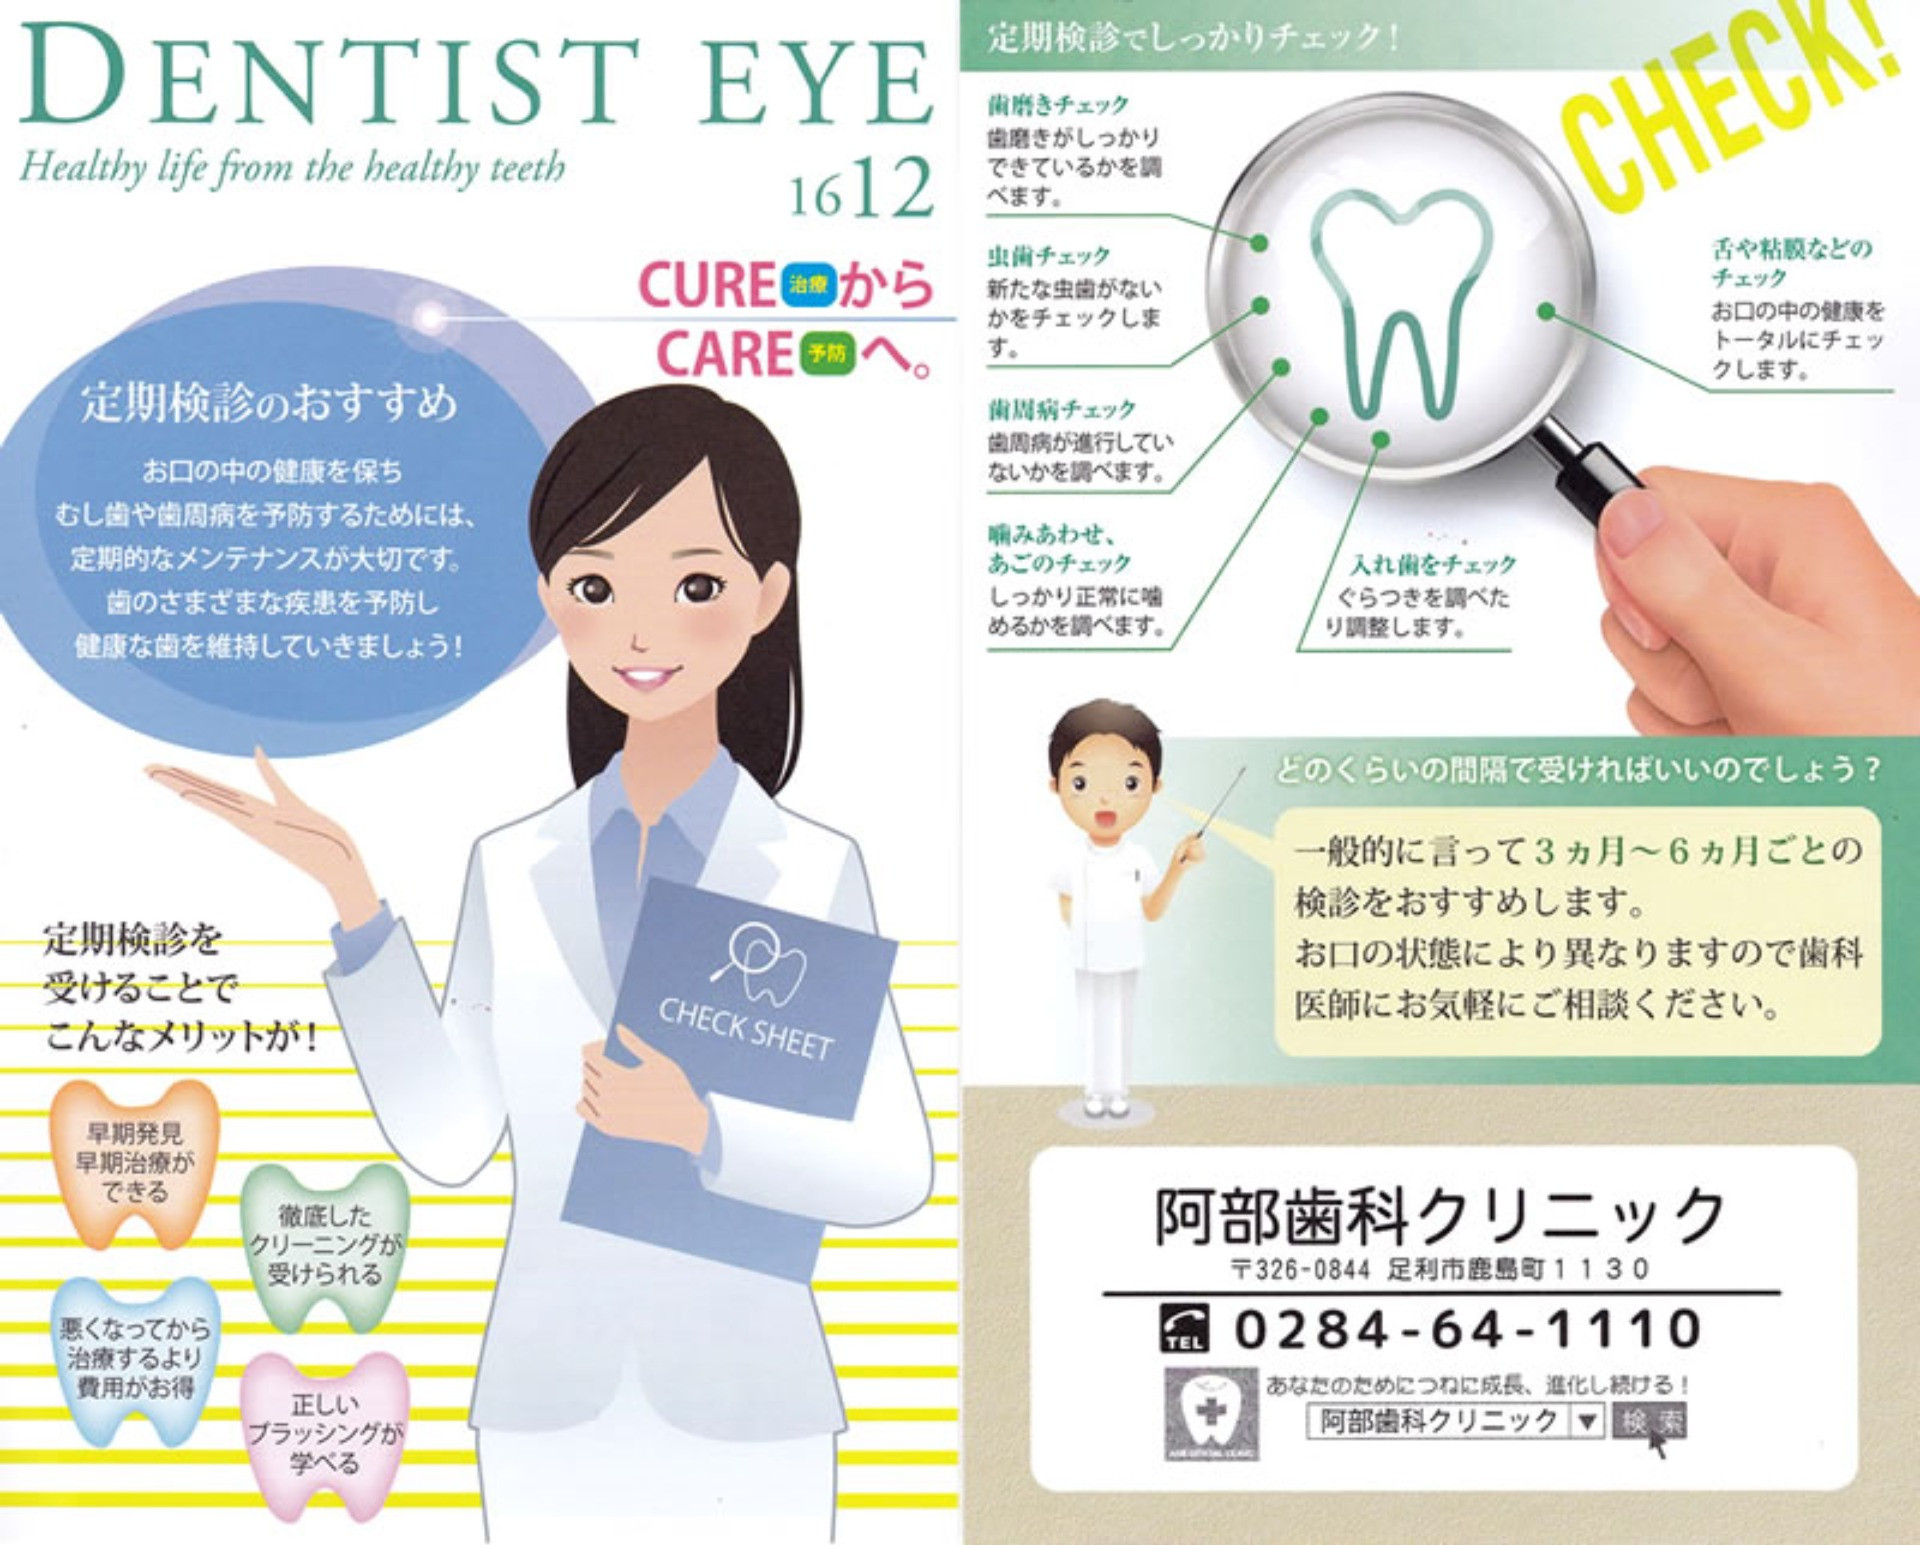 DENTIST EYE 2016年